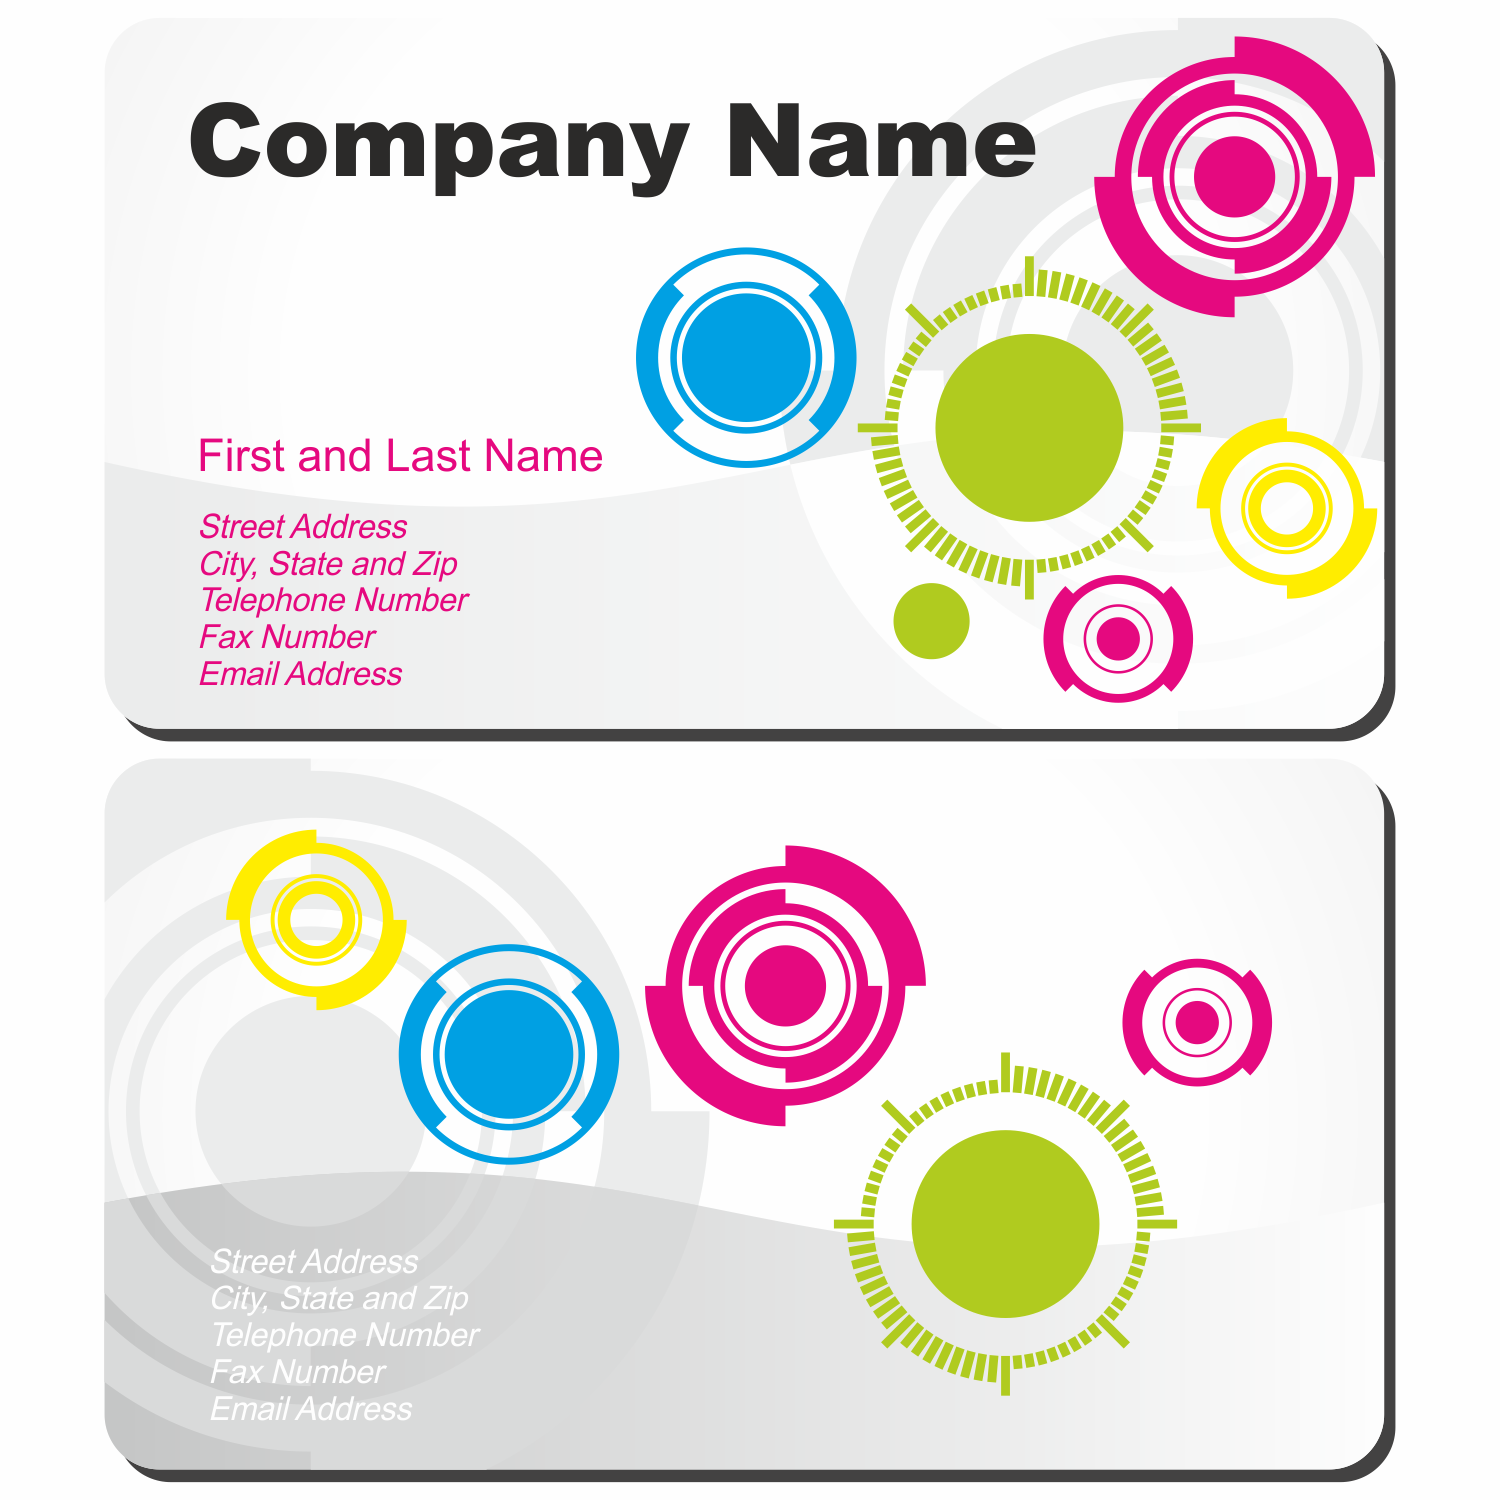 Visiting Card Background Design Png Hd Png Image